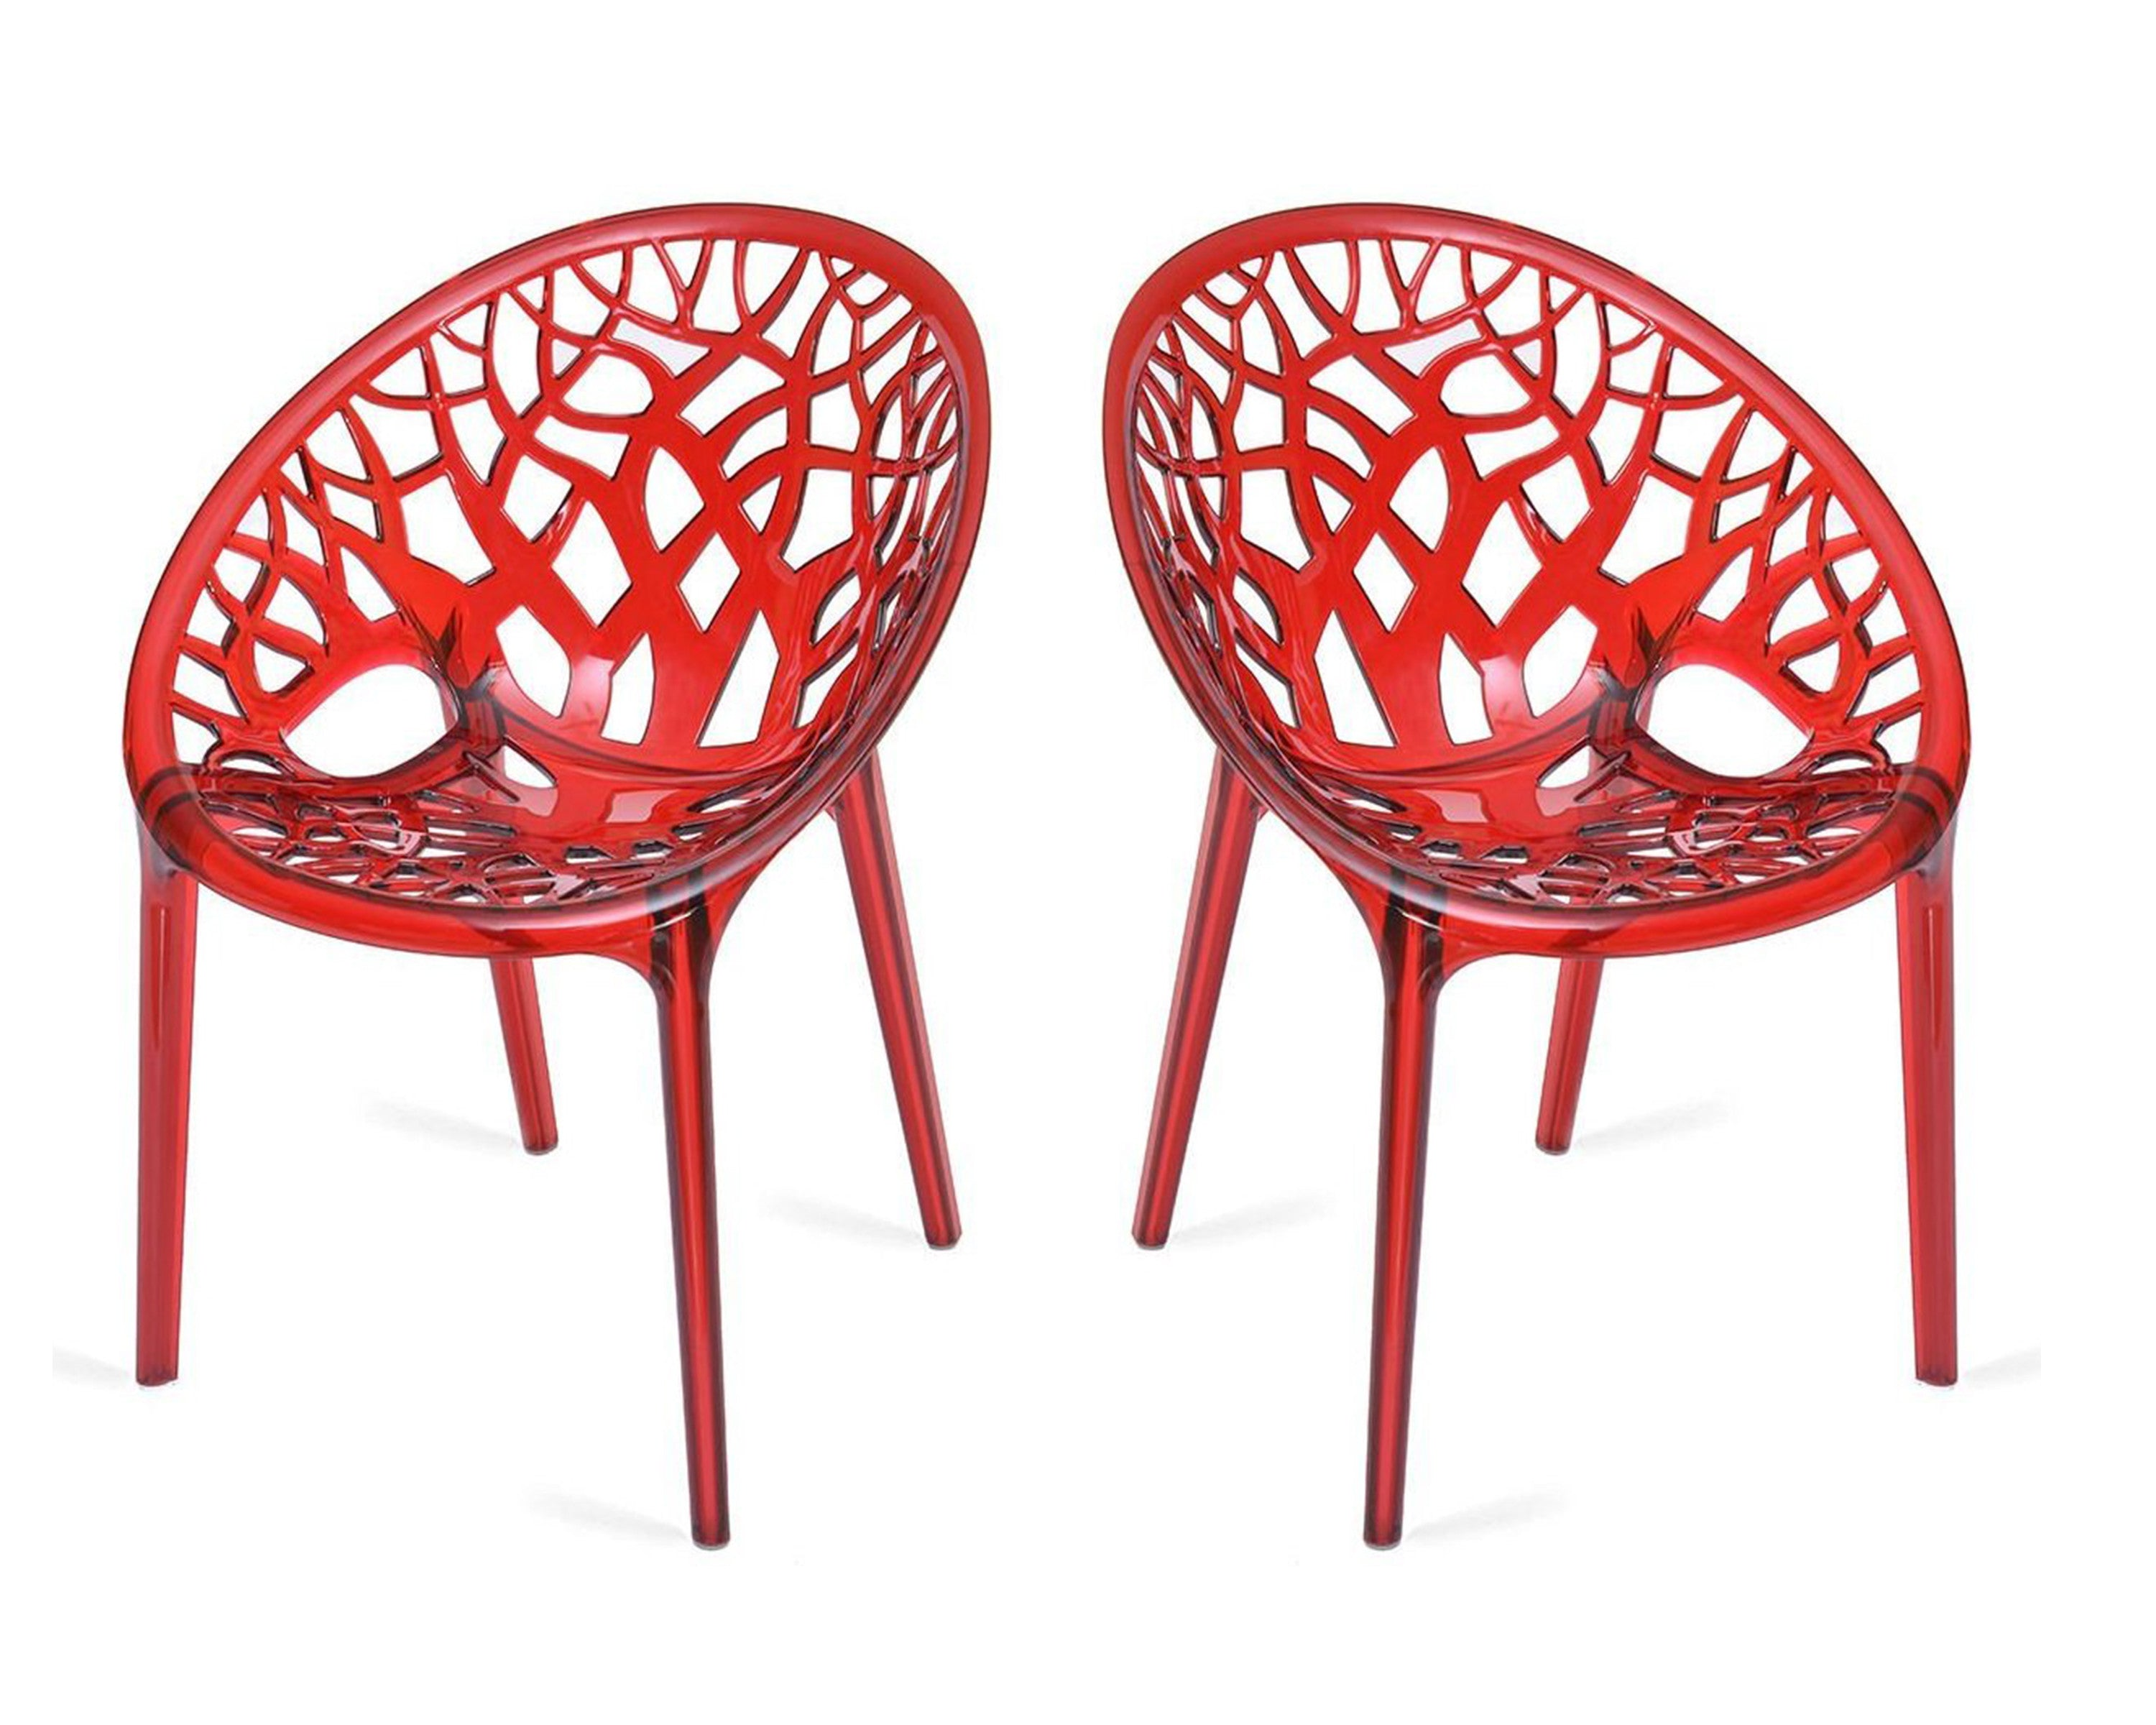 Nilkamal Premium PolyCarbonate Chairs Set of 2 Transparent Red